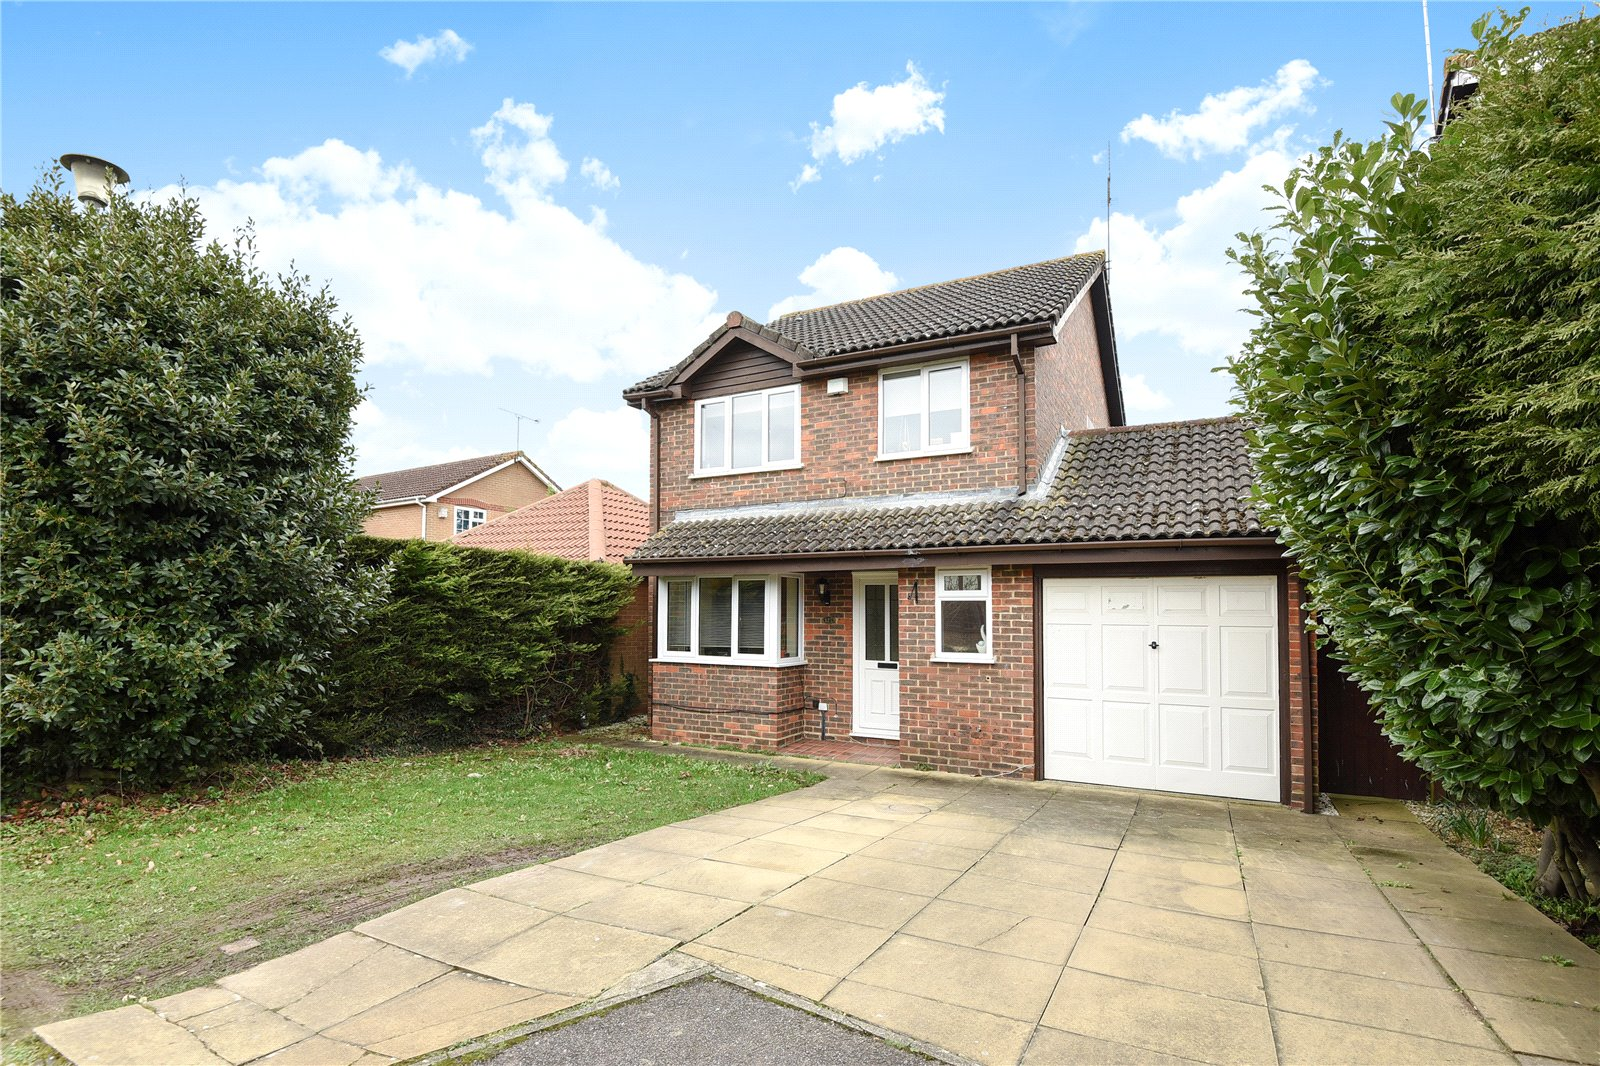 3 Bedrooms Detached House for sale in Tithe Barn Drive, Maidenhead, Berkshire, SL6